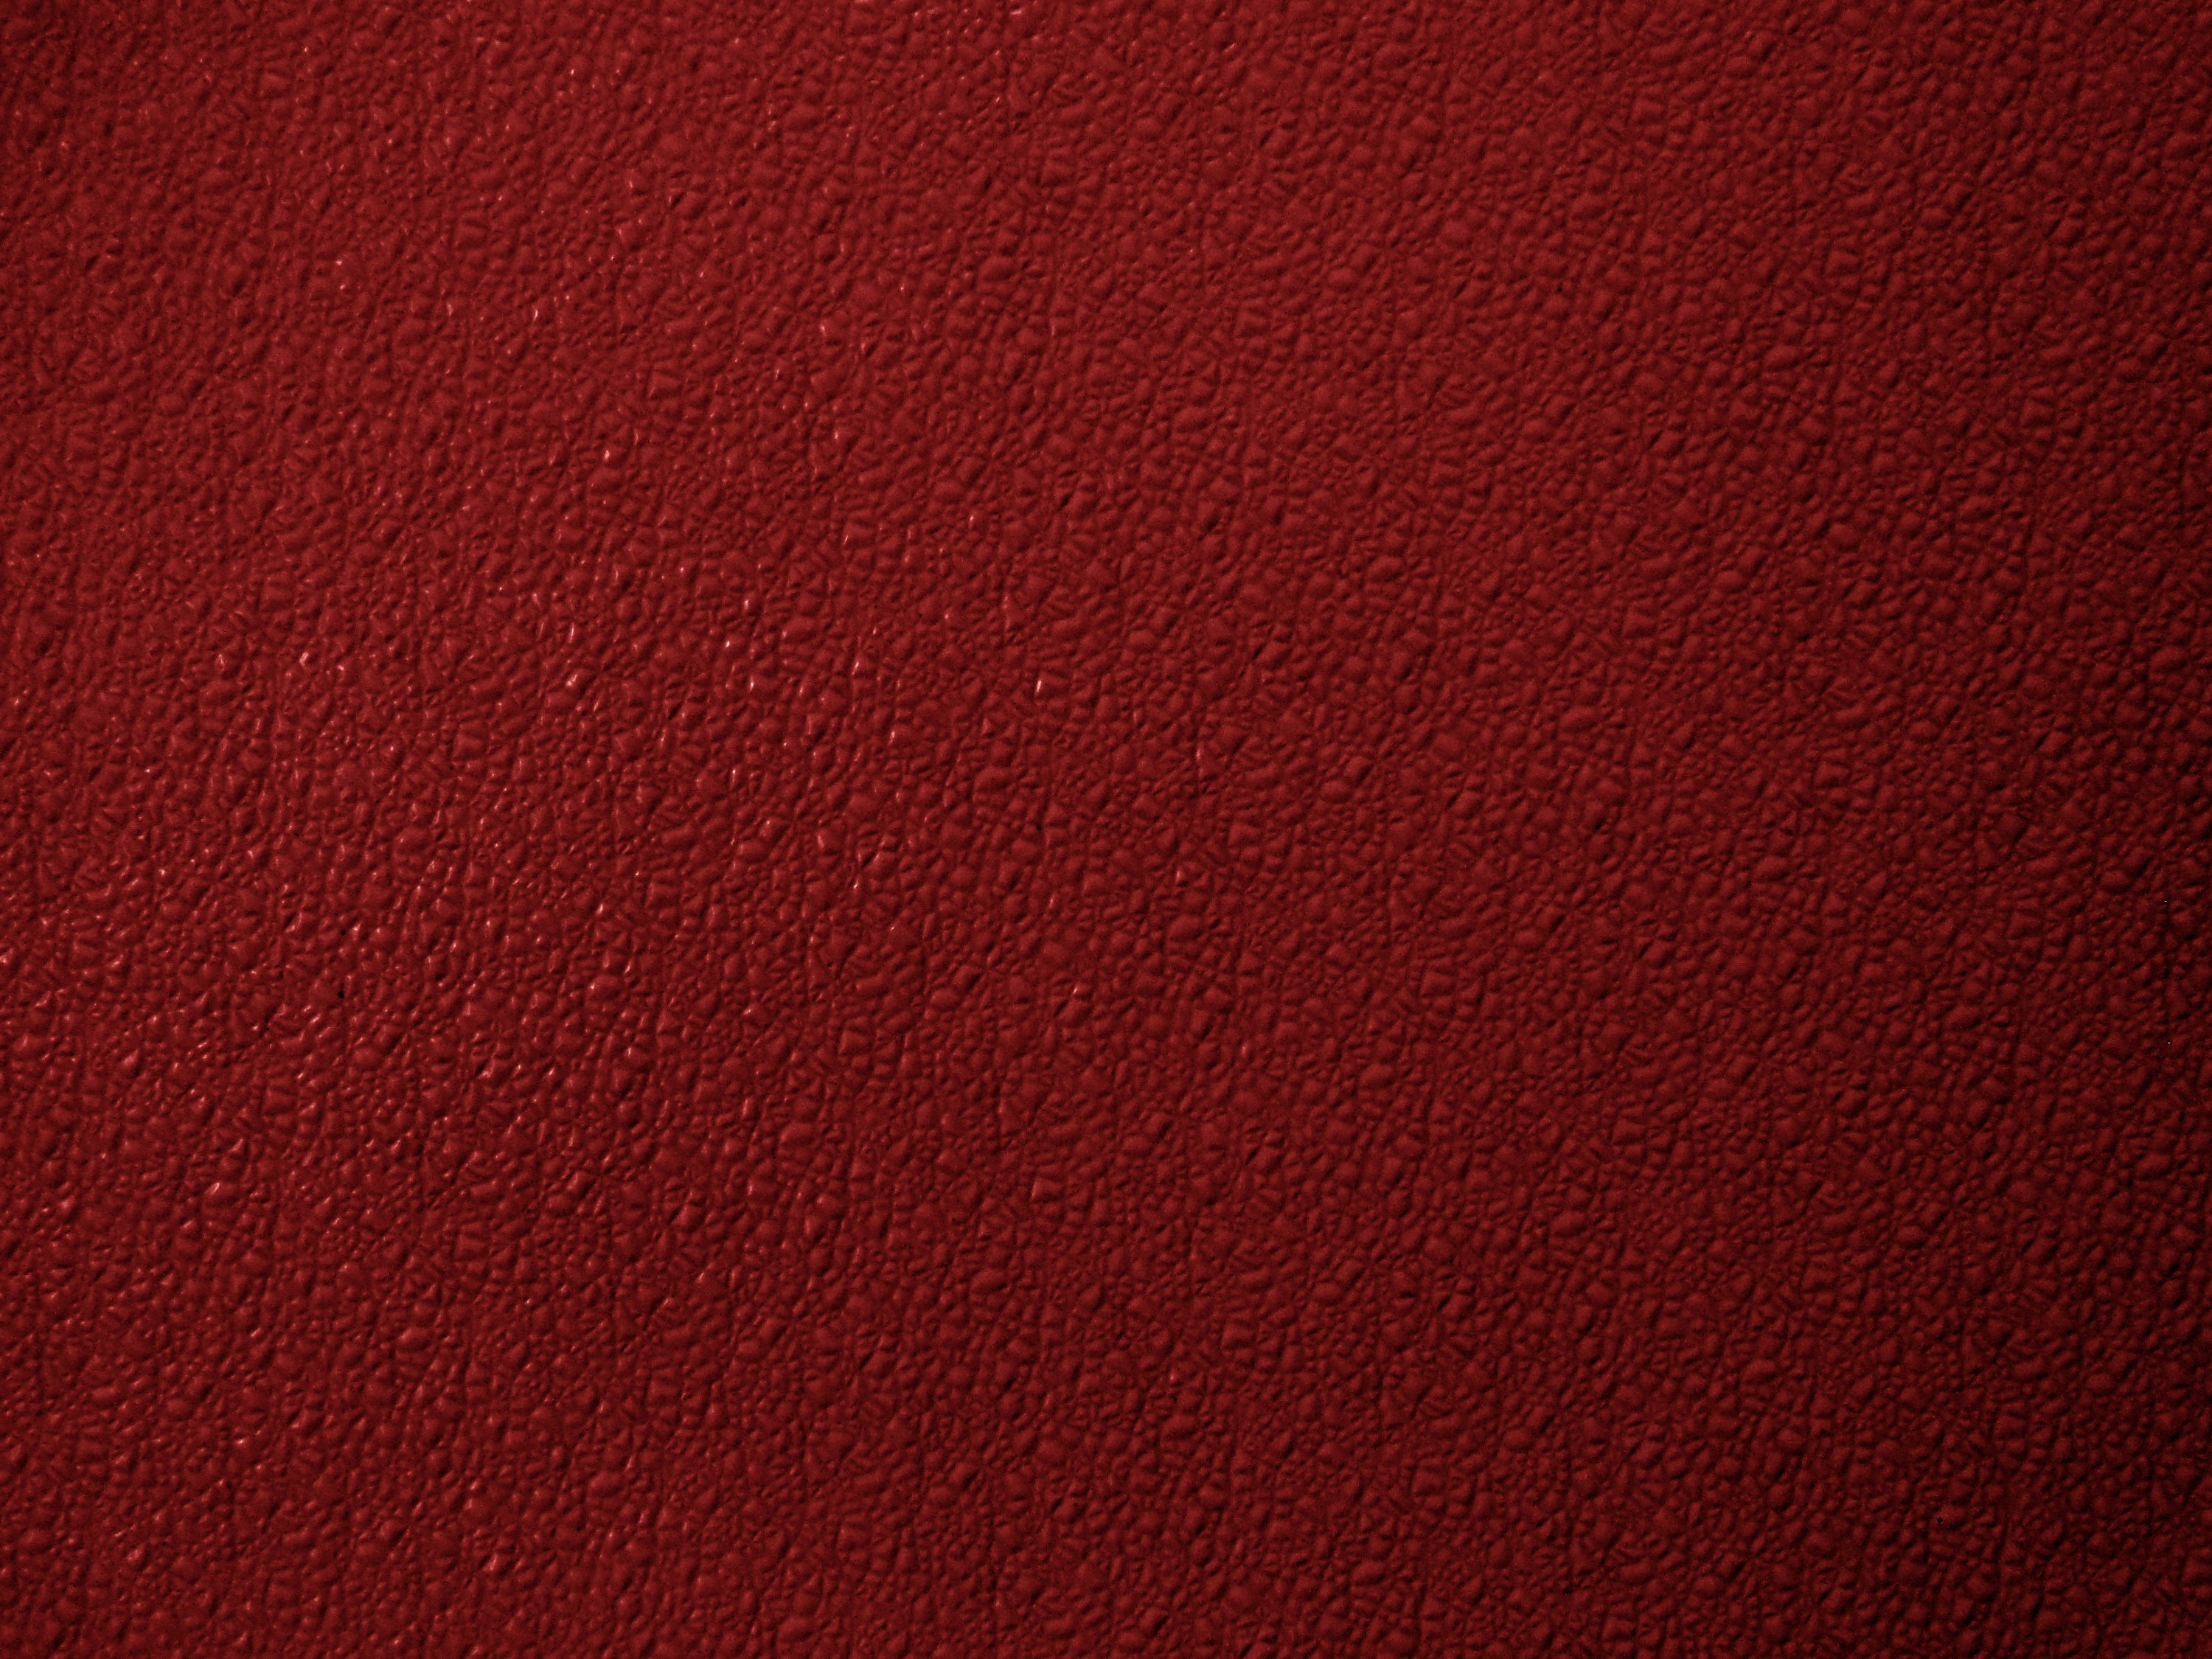 Bumpy burgundy plastic texture picture free photograph for Burgundy wallpaper